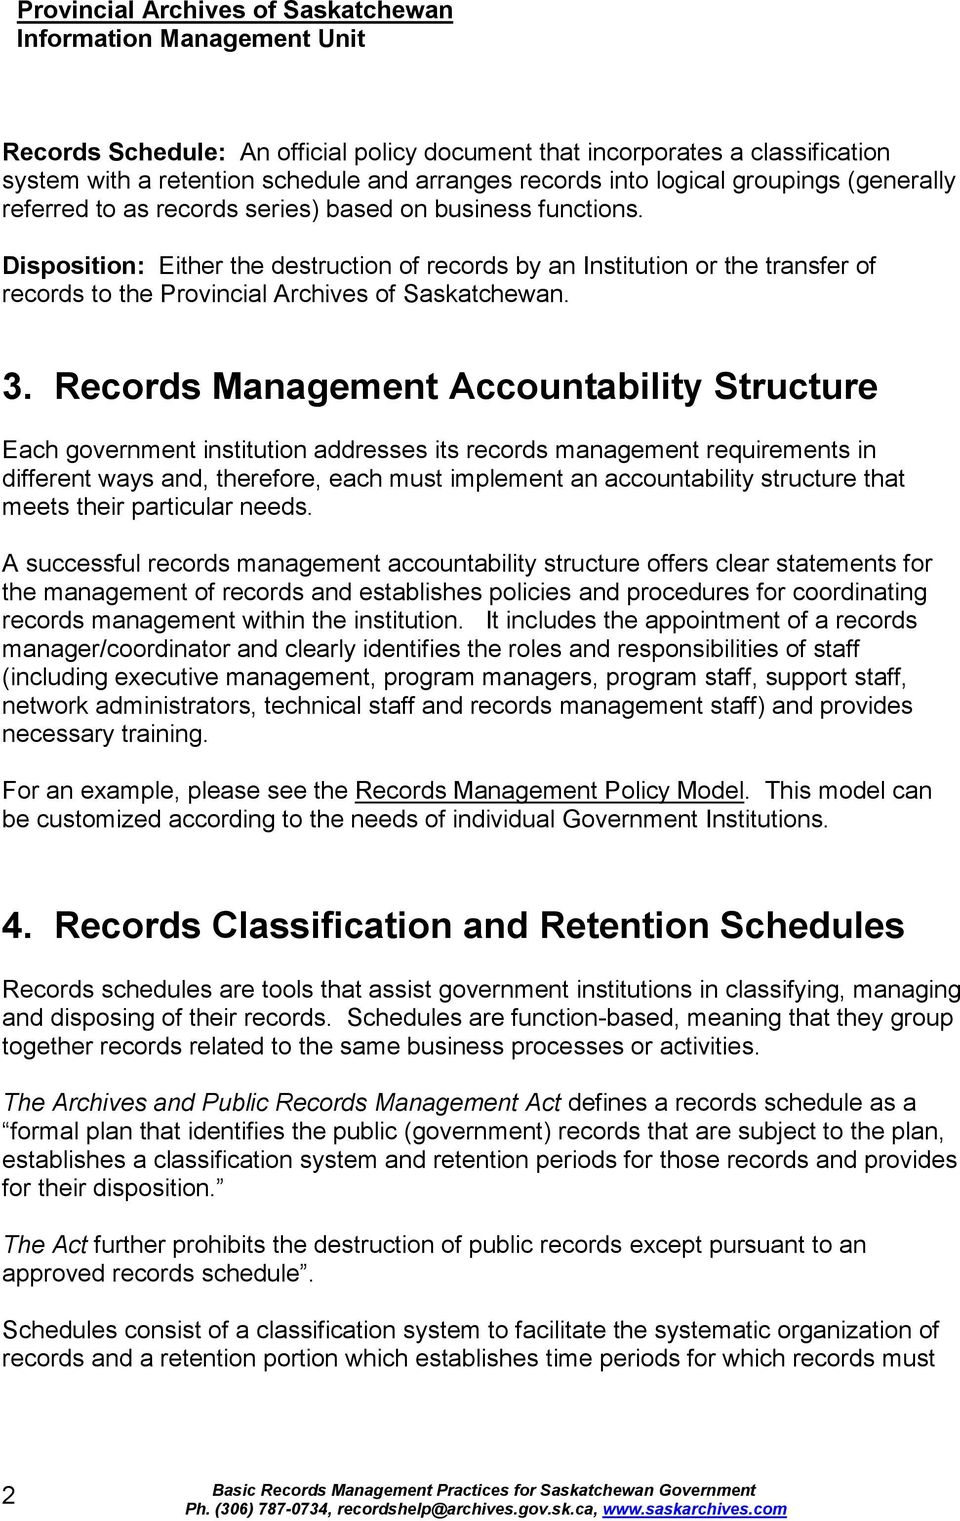 Records Management Accountability Structure Each government institution addresses its records management requirements in different ways and, therefore, each must implement an accountability structure